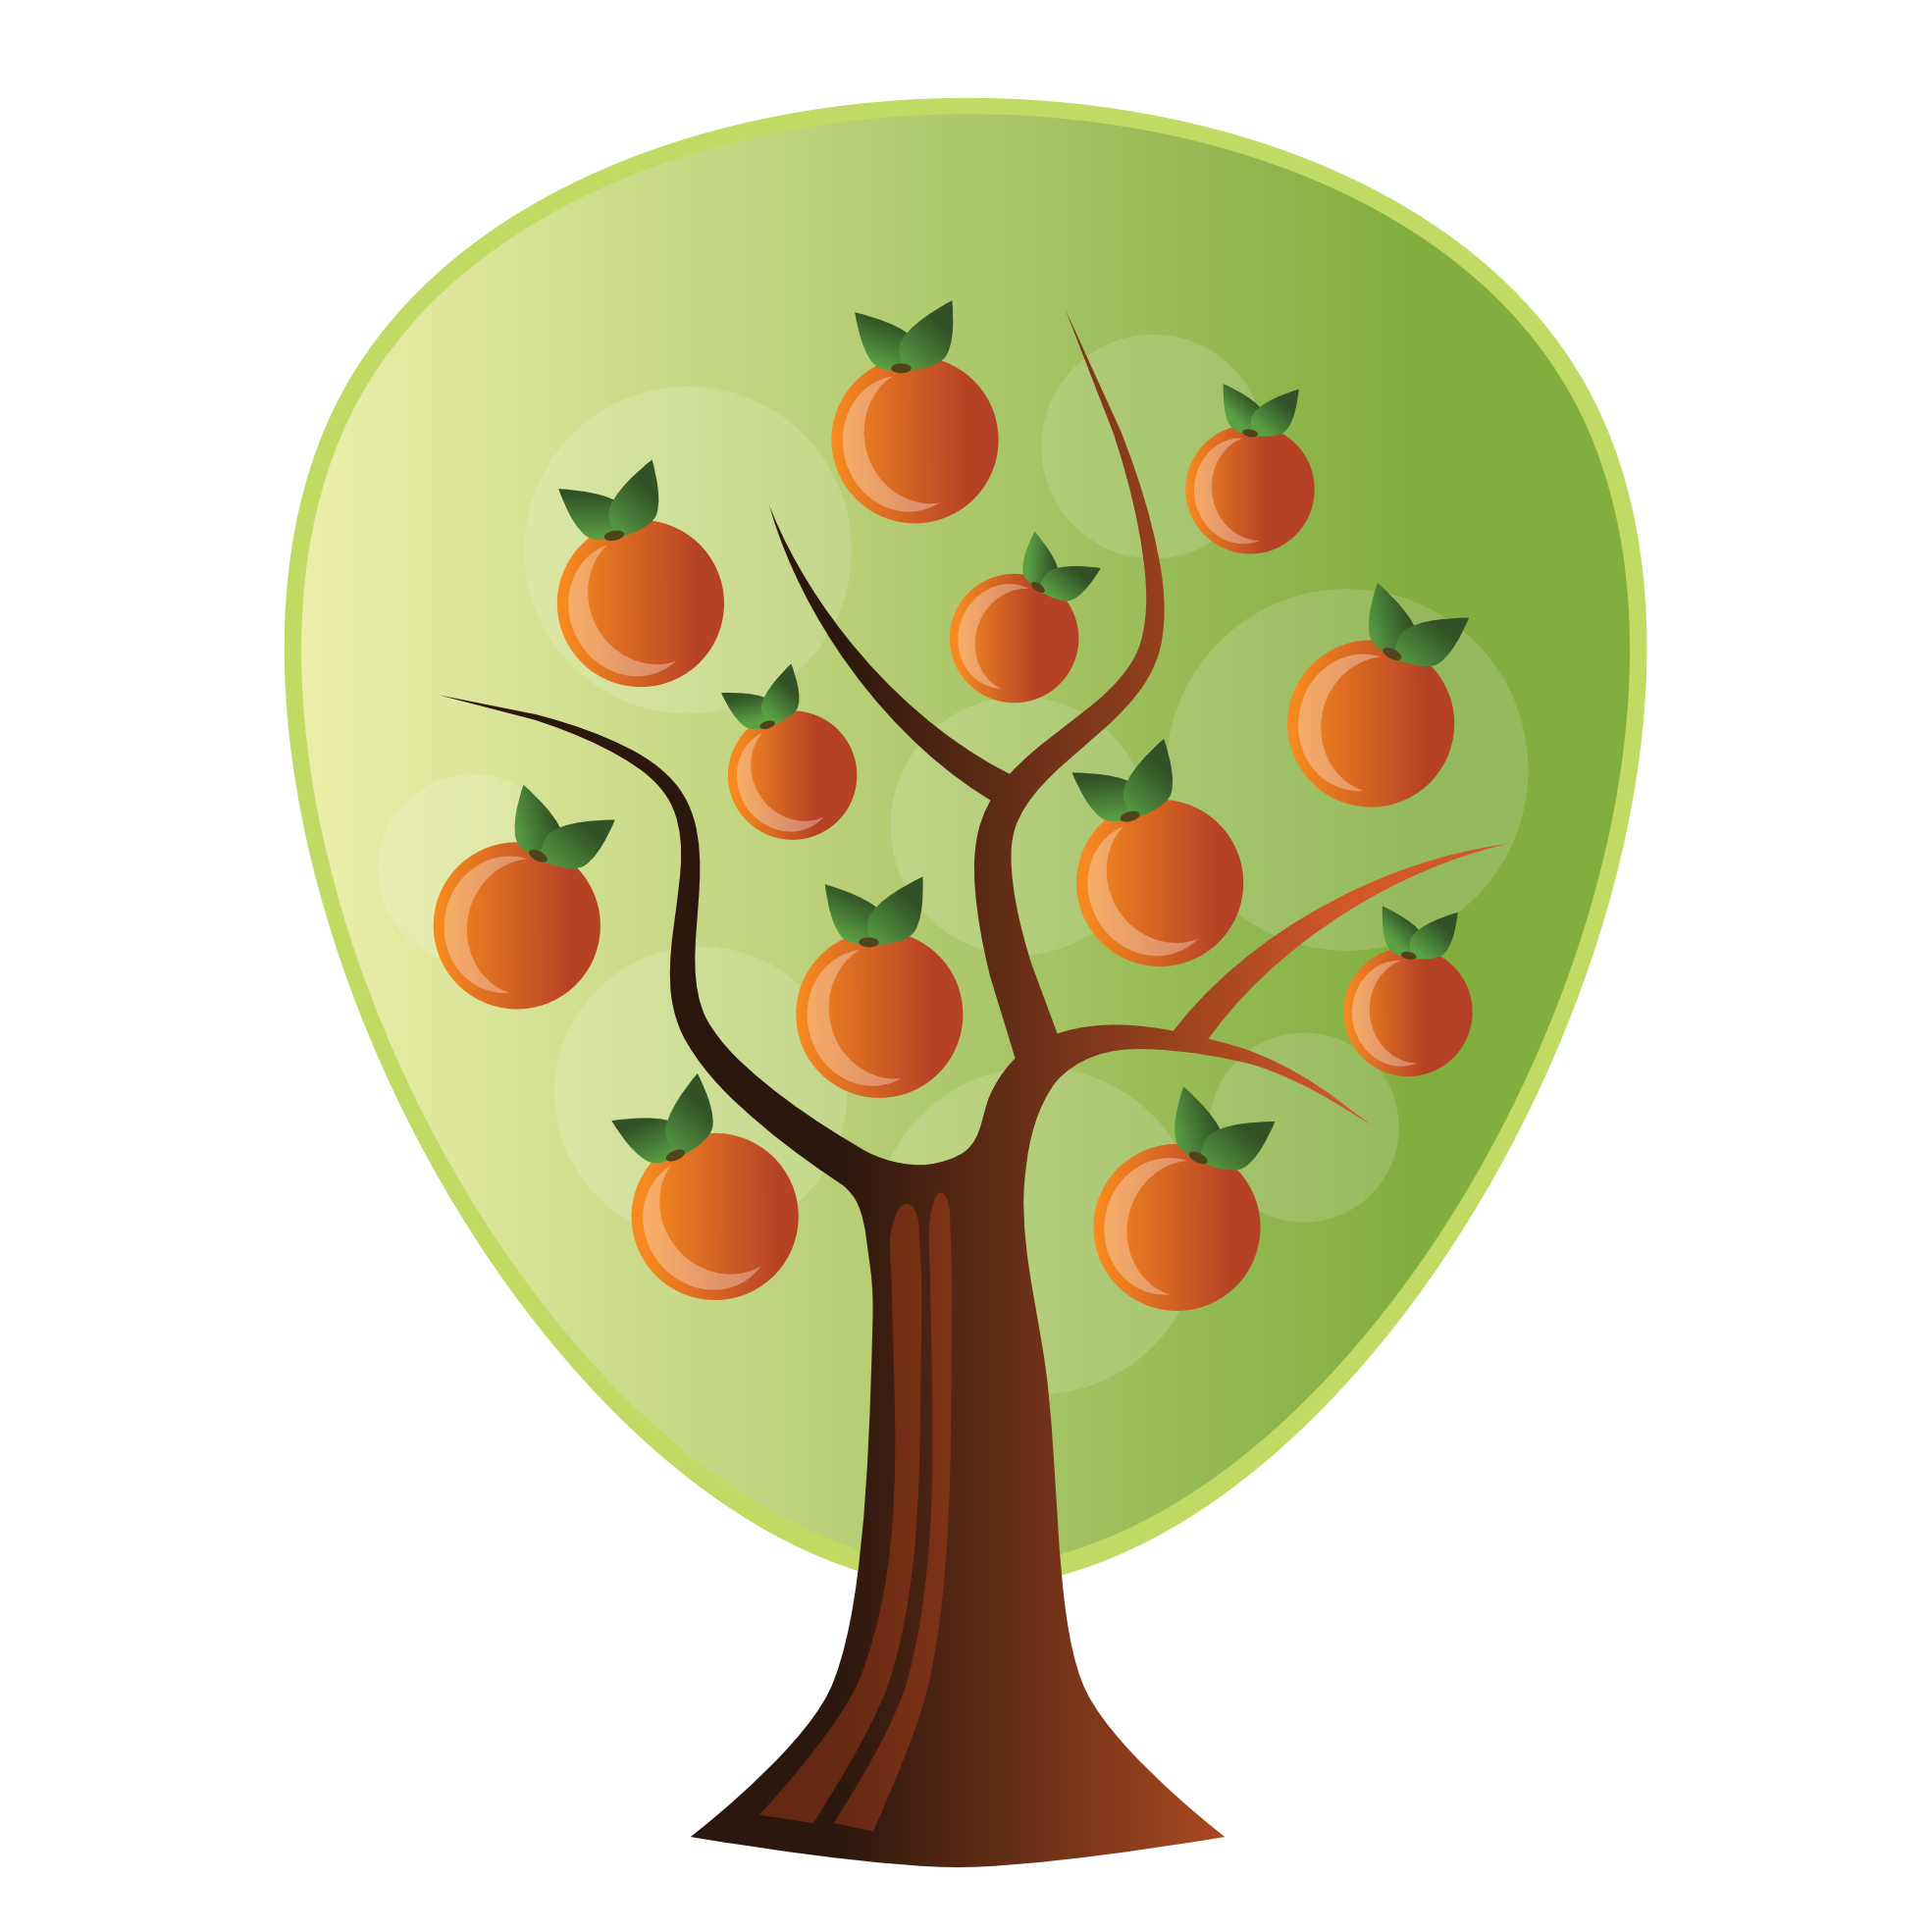 1969x1969 Clip Art Abstract Crops Orange Tree Scalable